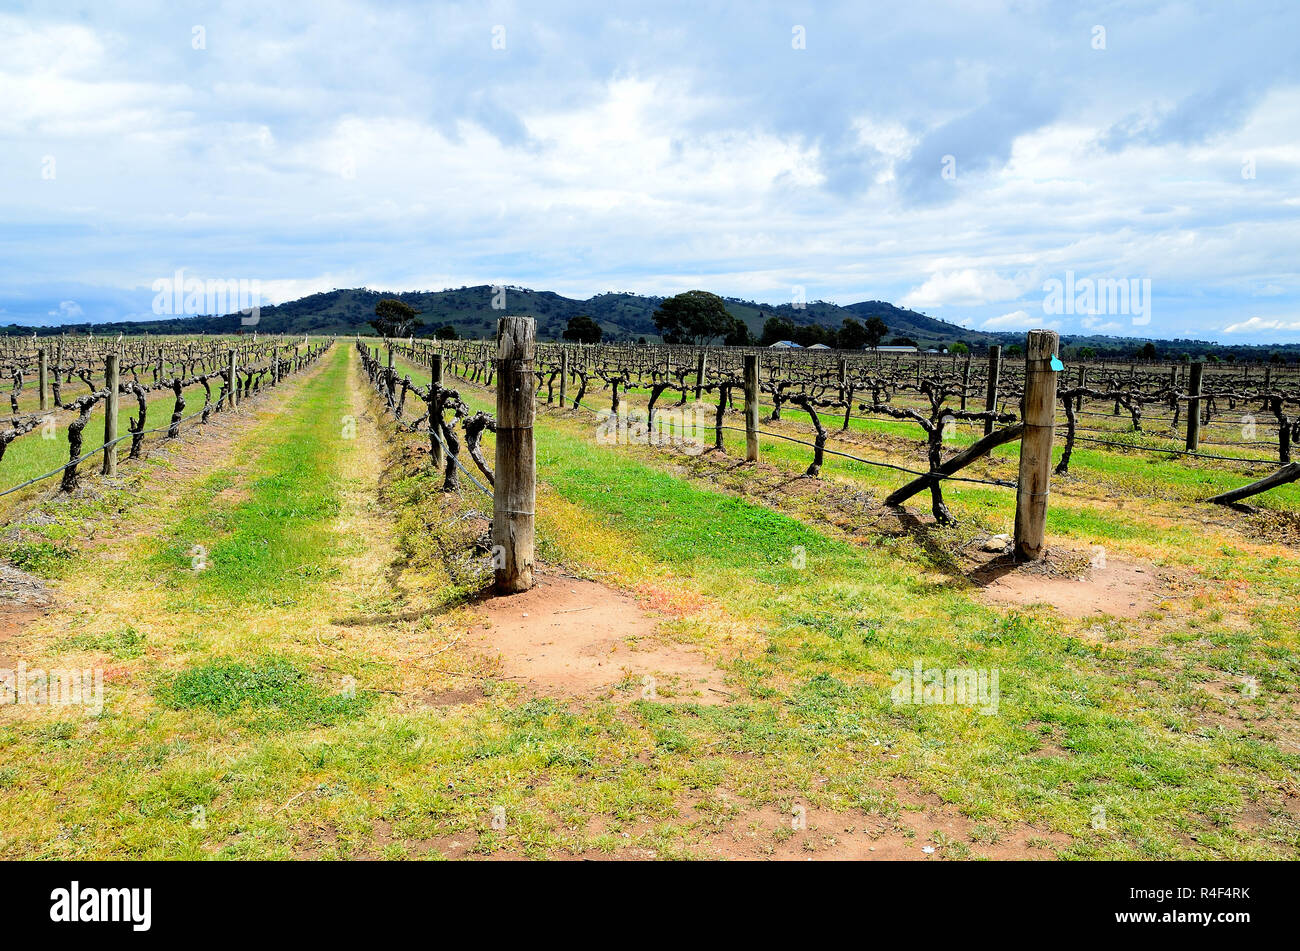 In the region of Mudgee, Australia. Beautiful view of growing vines during a dry spring. Contrasting colors with threatening cloudy sky and mountains - Stock Image